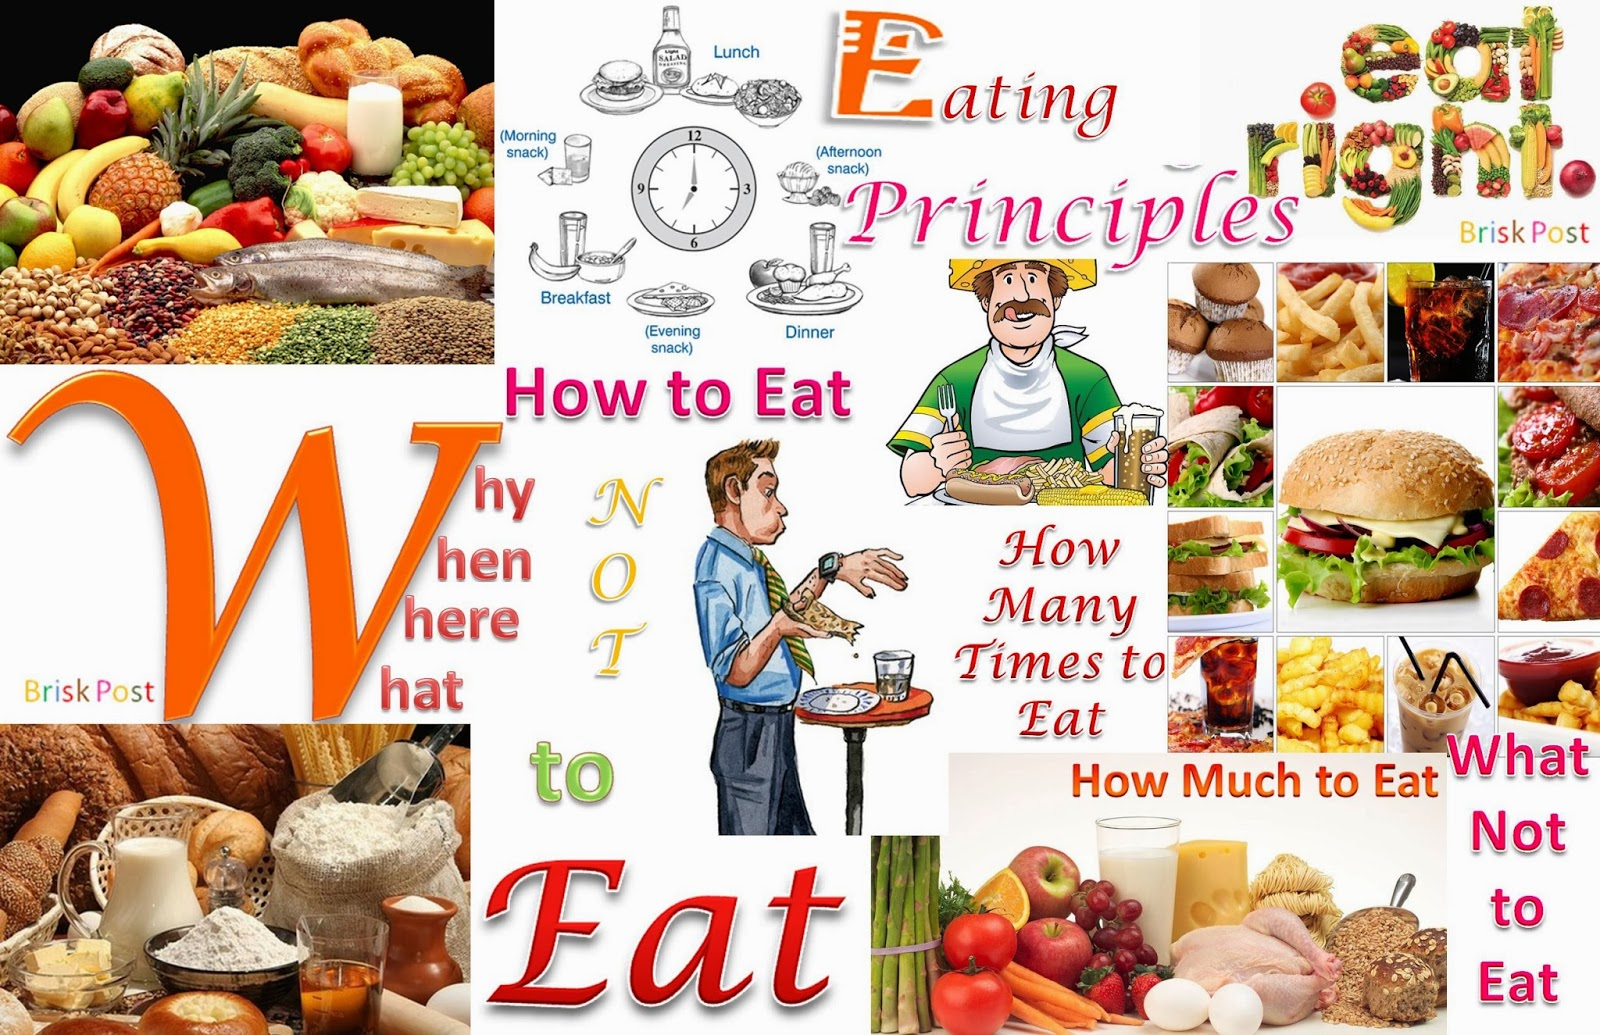 Principle Eating Habits: How to eat; How many time to eat; How much to ear; What not to eat; Why, when, where, what to eat